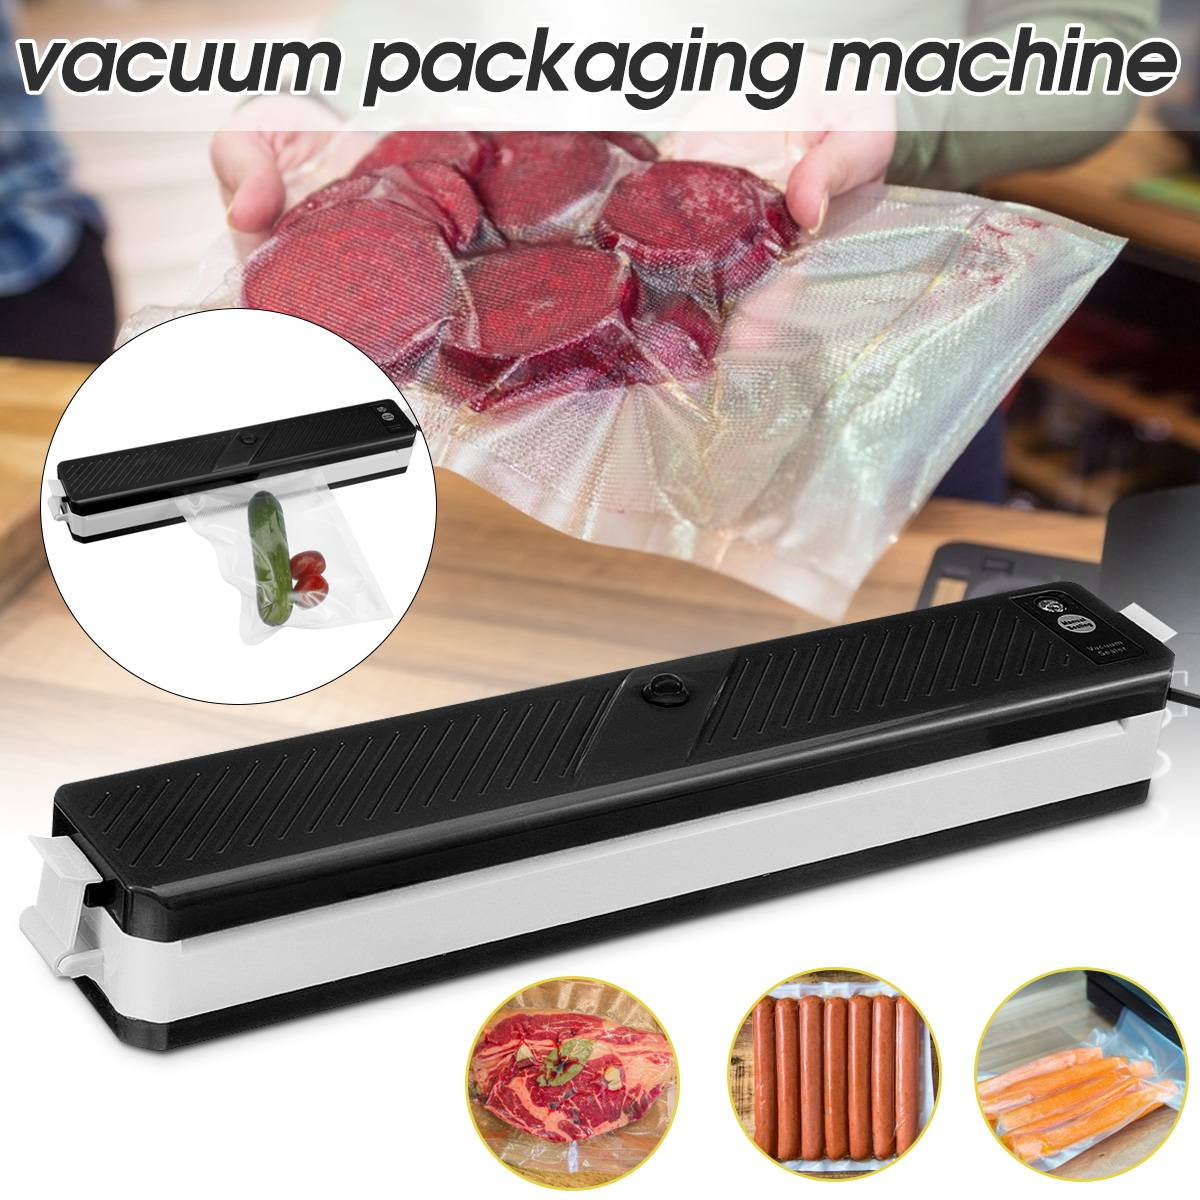 Automatic Household Vacuum Sealer Packing Machine Saver Food Sealing Kitchen Electric Vacuum Sealer Storage Food+10pcs Bag